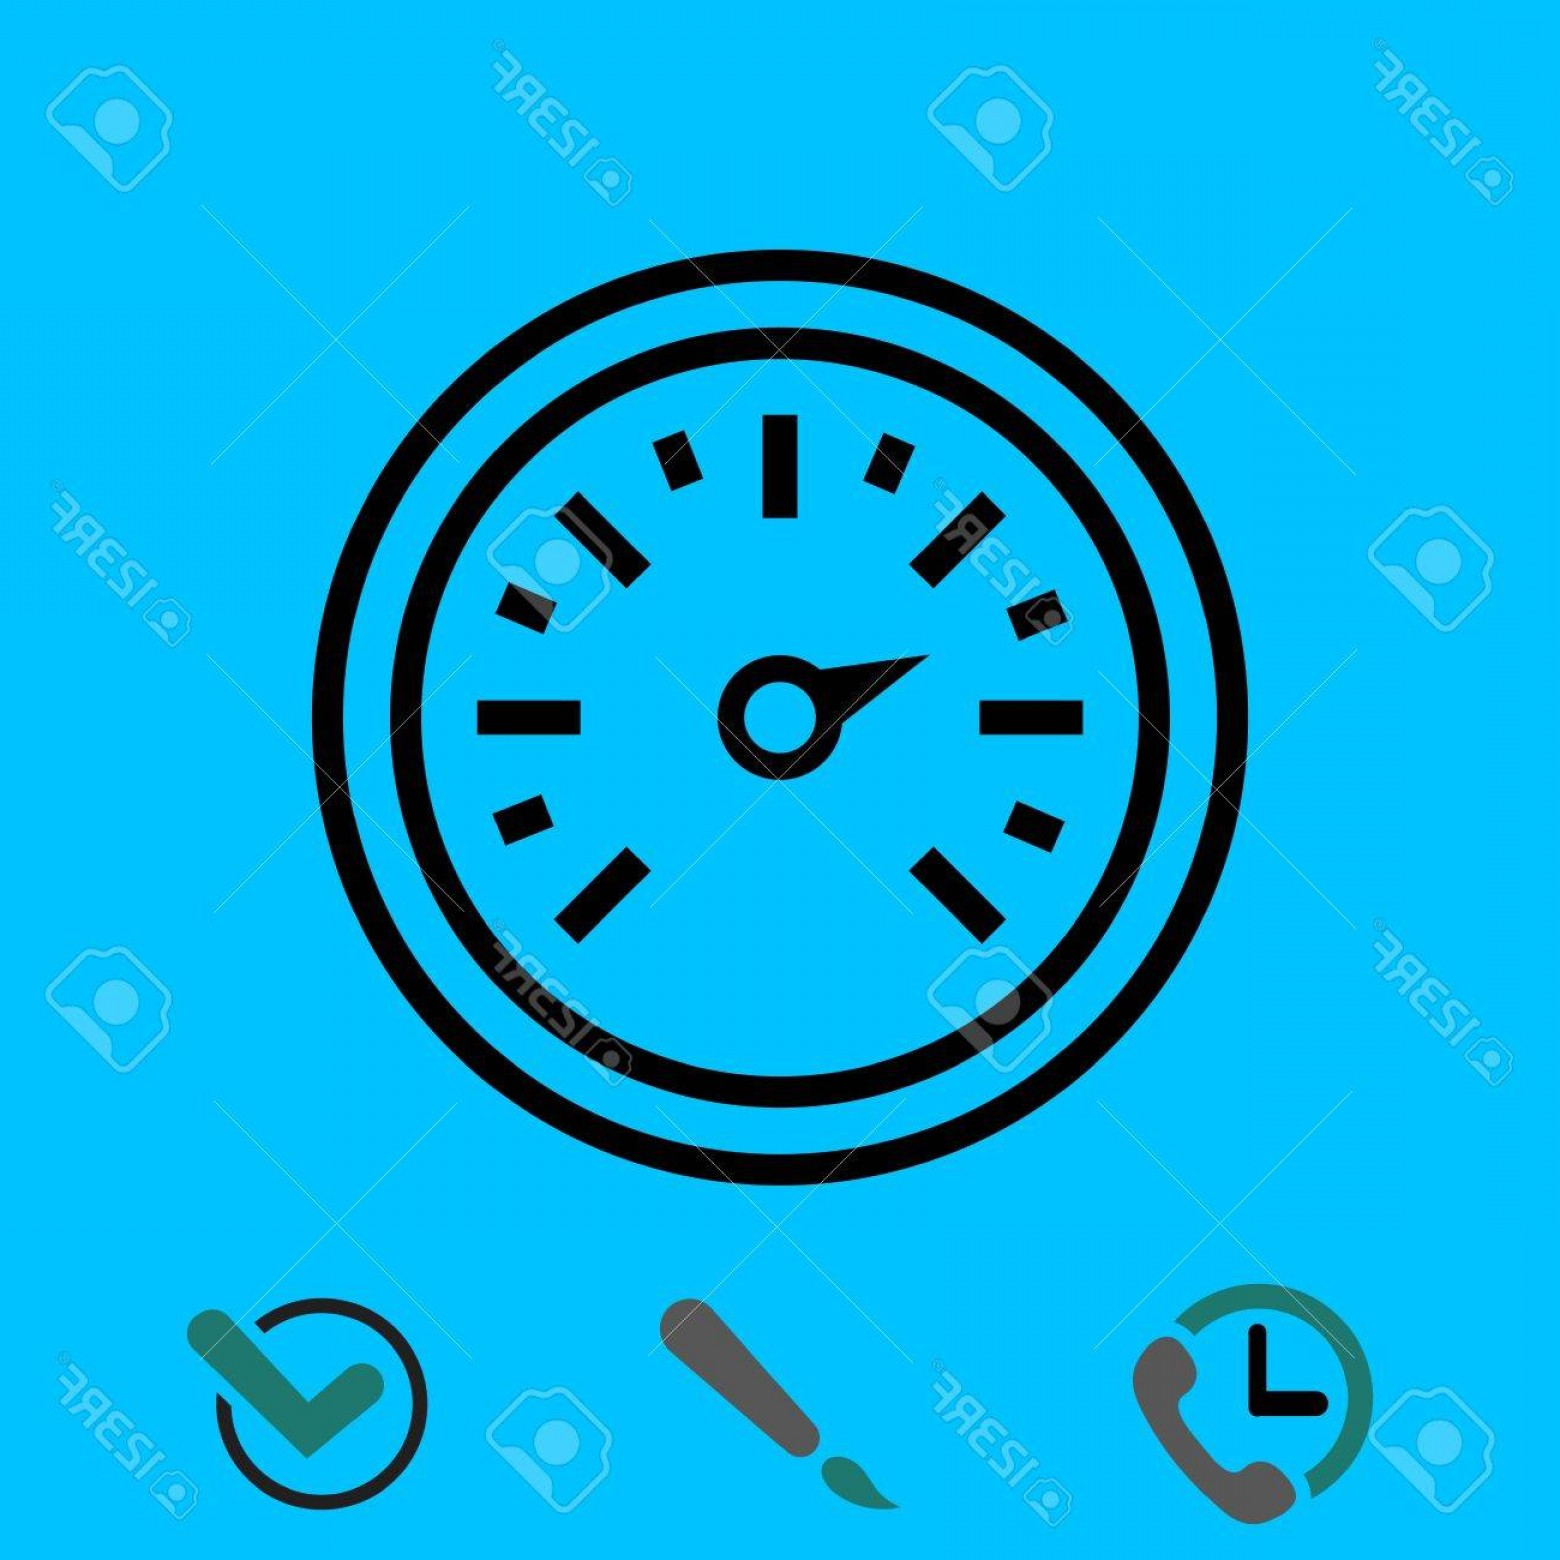 In Icon Stock Vector: Photostock Vector Air Pressure Sensor Icon Stock Vector Illustration Flat Design